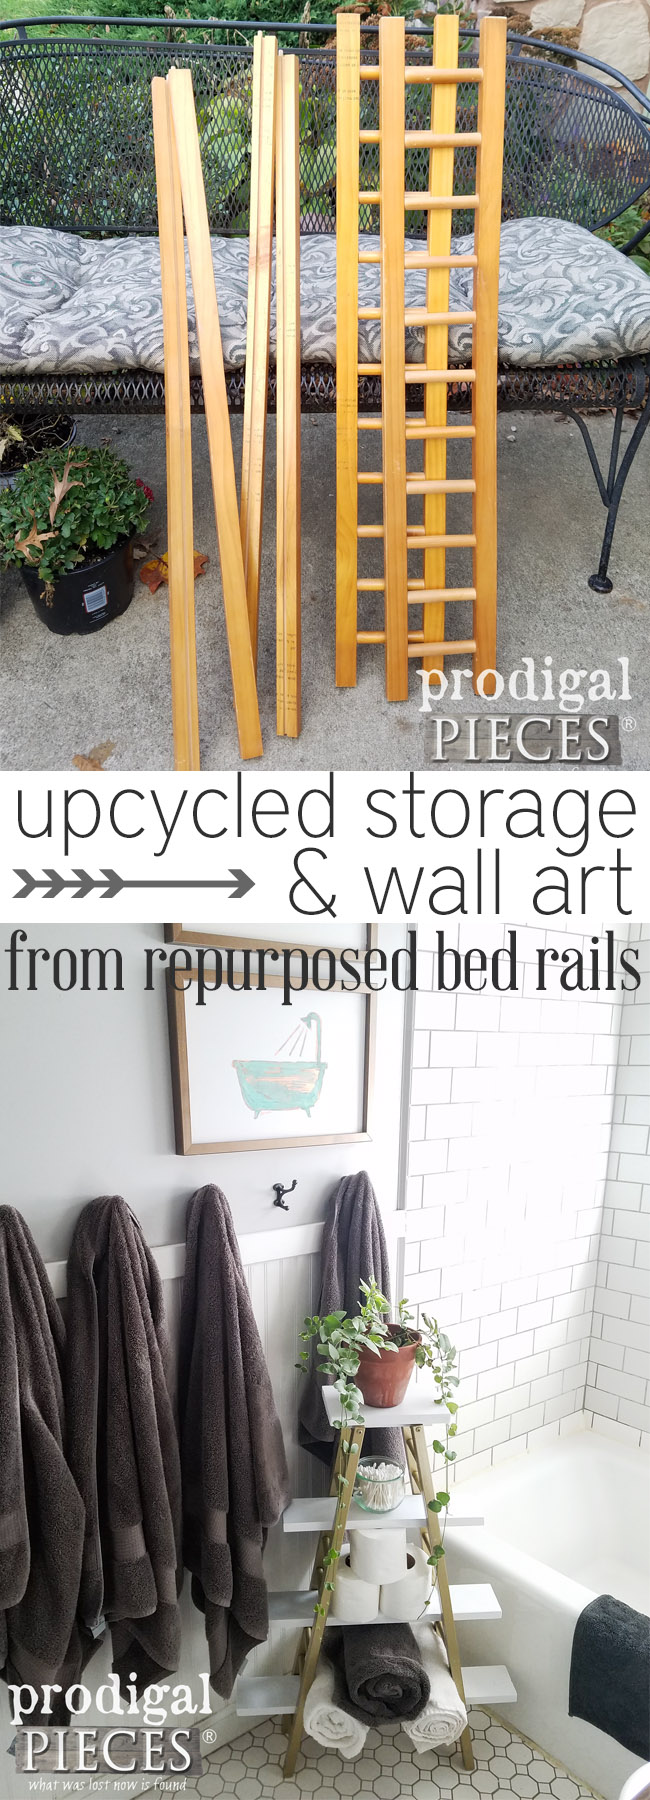 These thrift store bed rails make for great storage pieces and wall art.